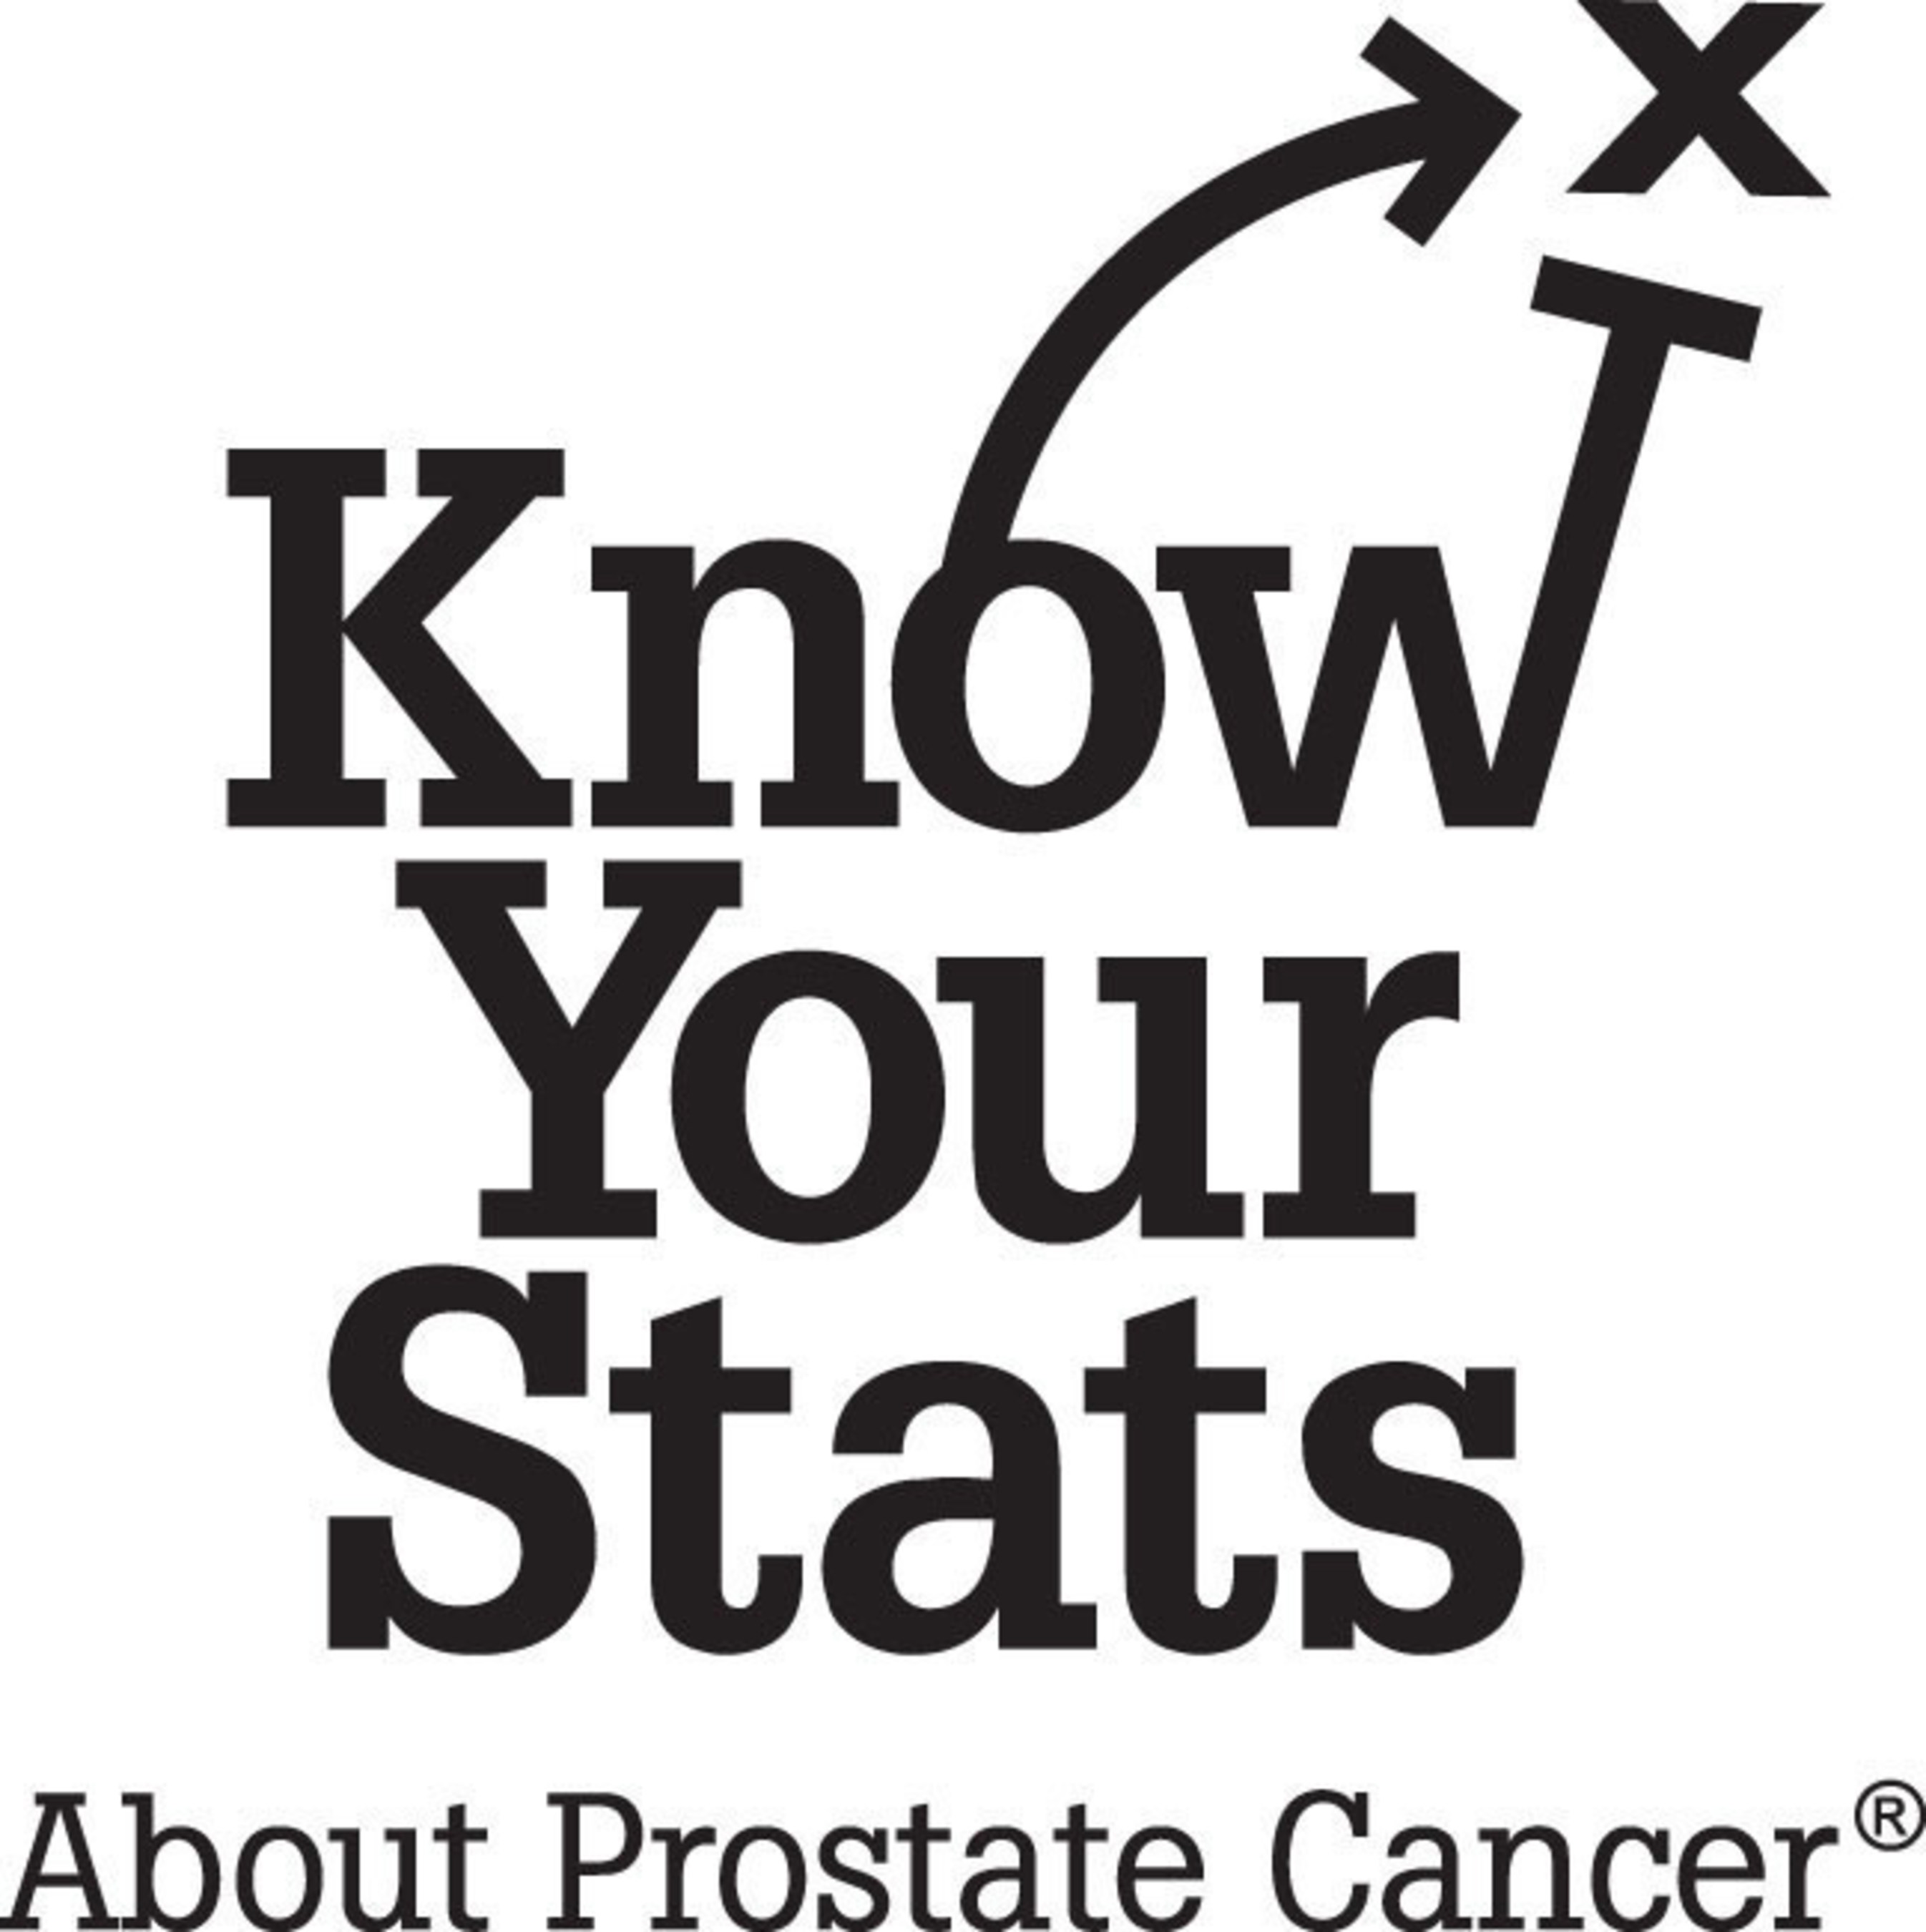 1 in 7 Men will be Diagnosed with Prostate Cancer. Don't Sit on the Sidelines. Know Your Risk. Talk To Your Doctor!